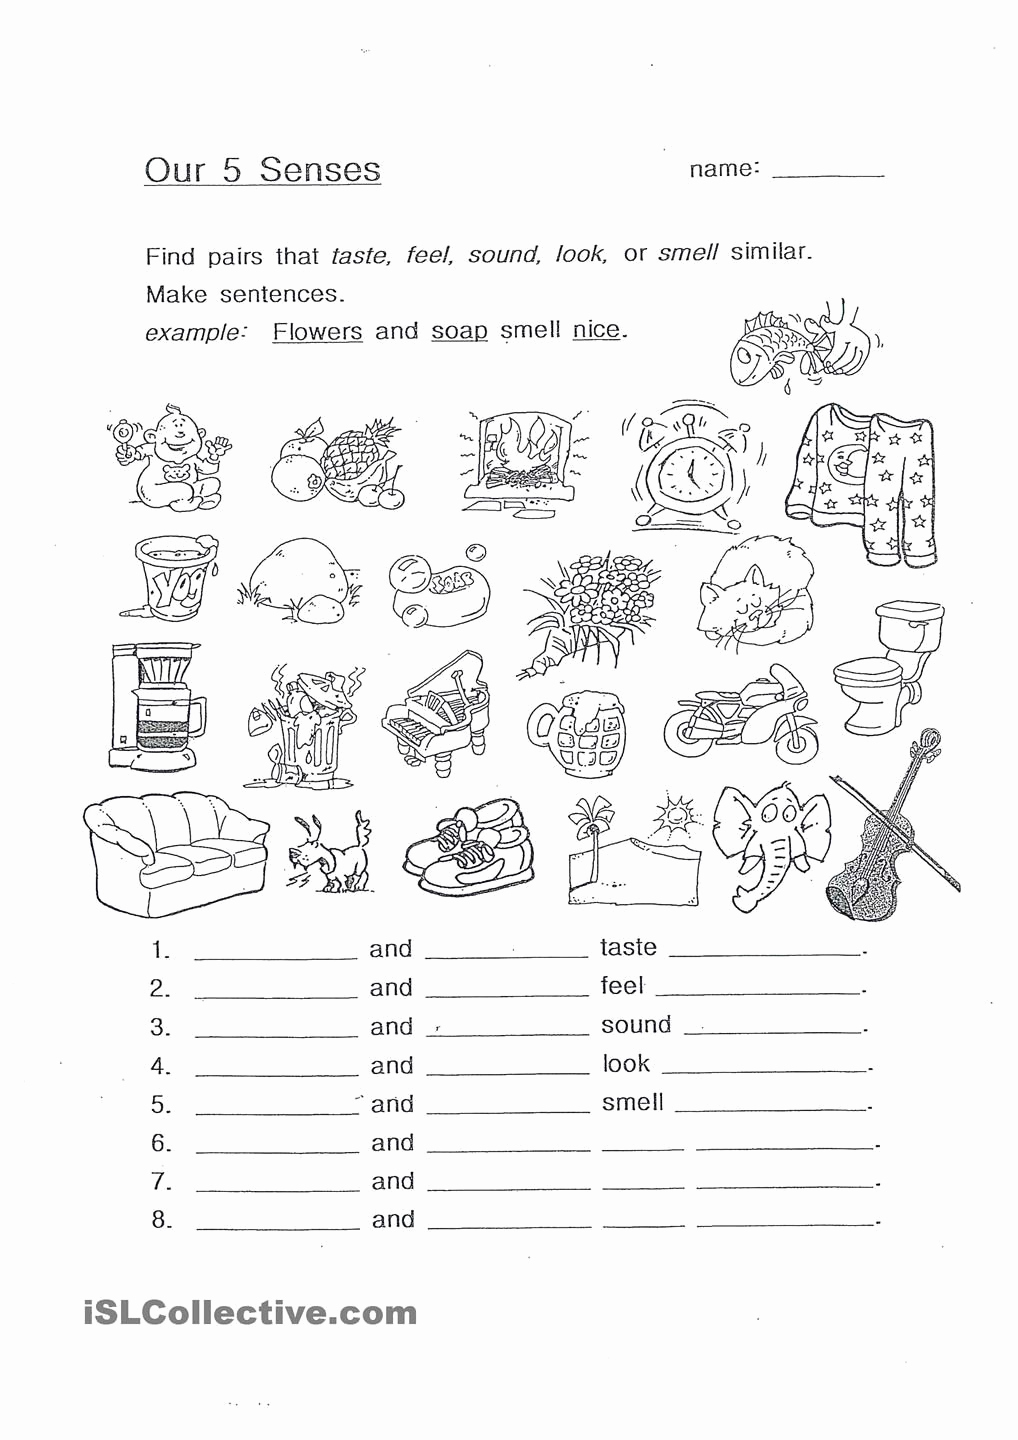 The Five Senses Worksheets Unique Our 5 Senses the Five Senses Pinterest